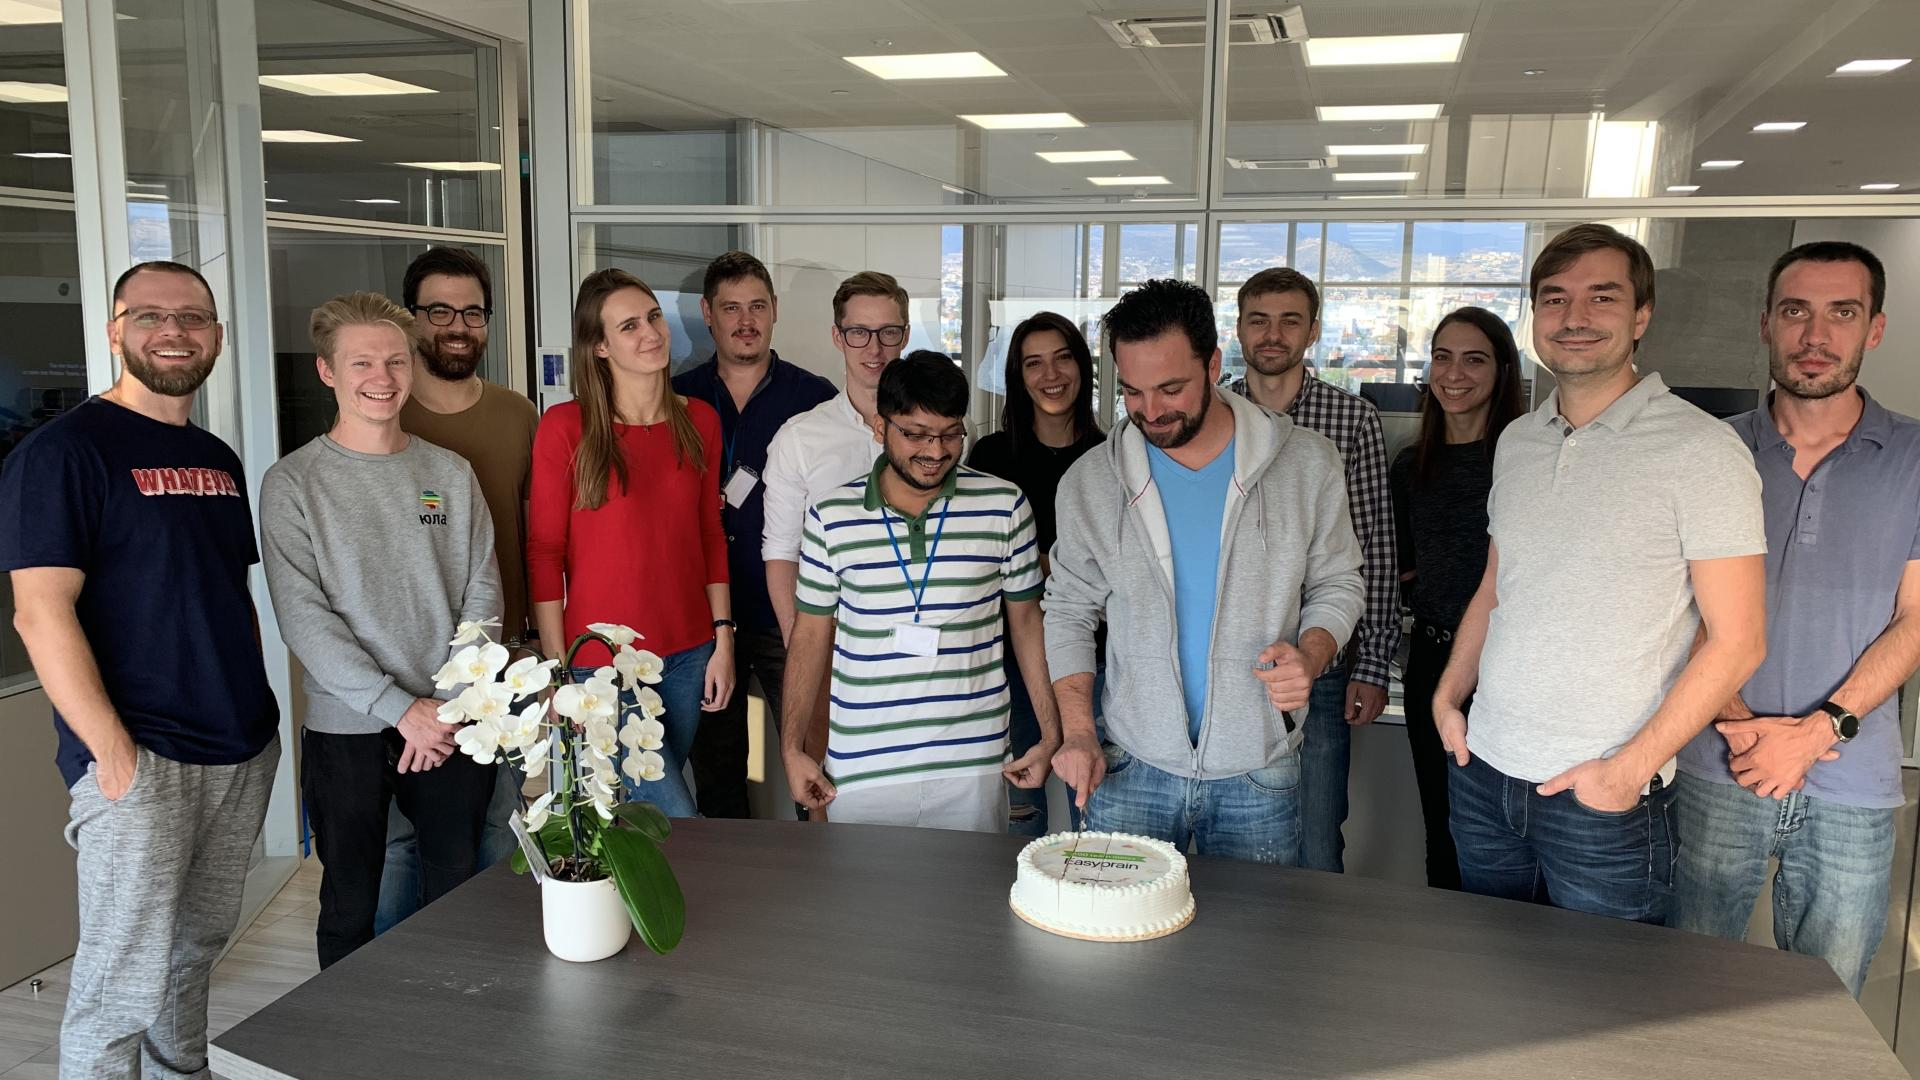 Milestone celebration of 100 employees in Easybrain Limassol office